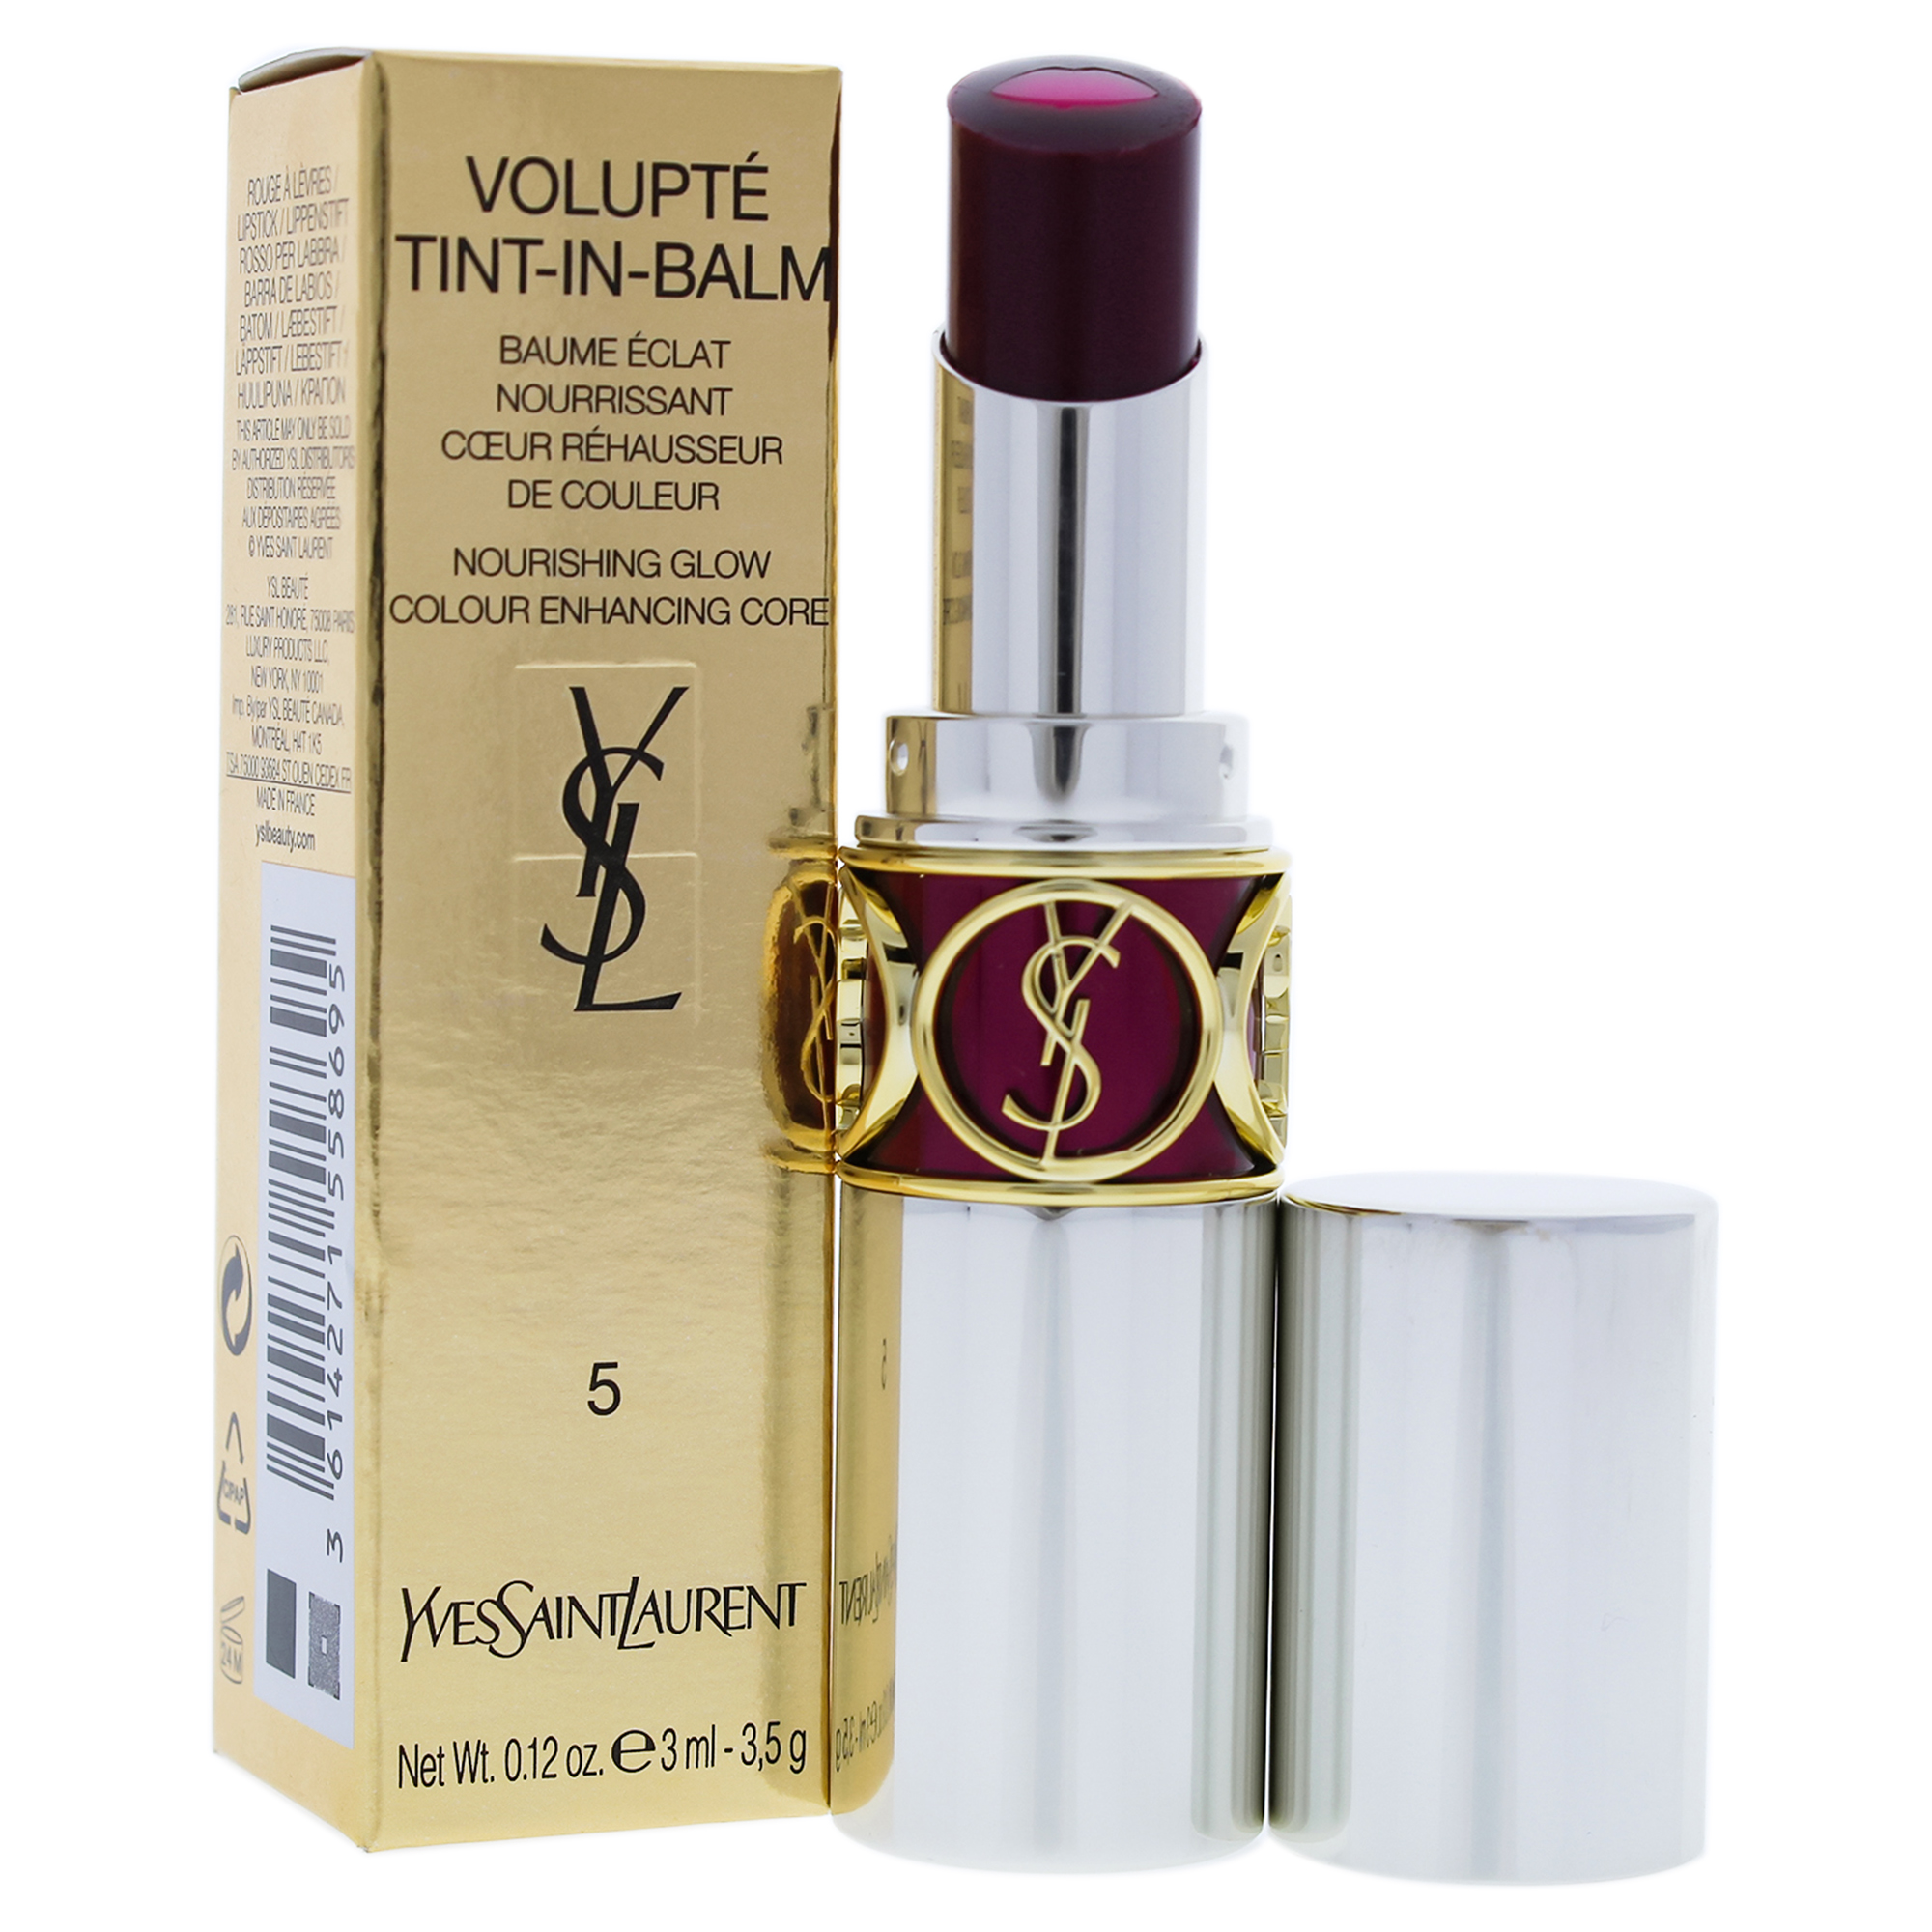 Volupte Tint In Balm - 5 Dare Me Plum by Yves Saint Laurent for Women - 0.12 oz Lipstick